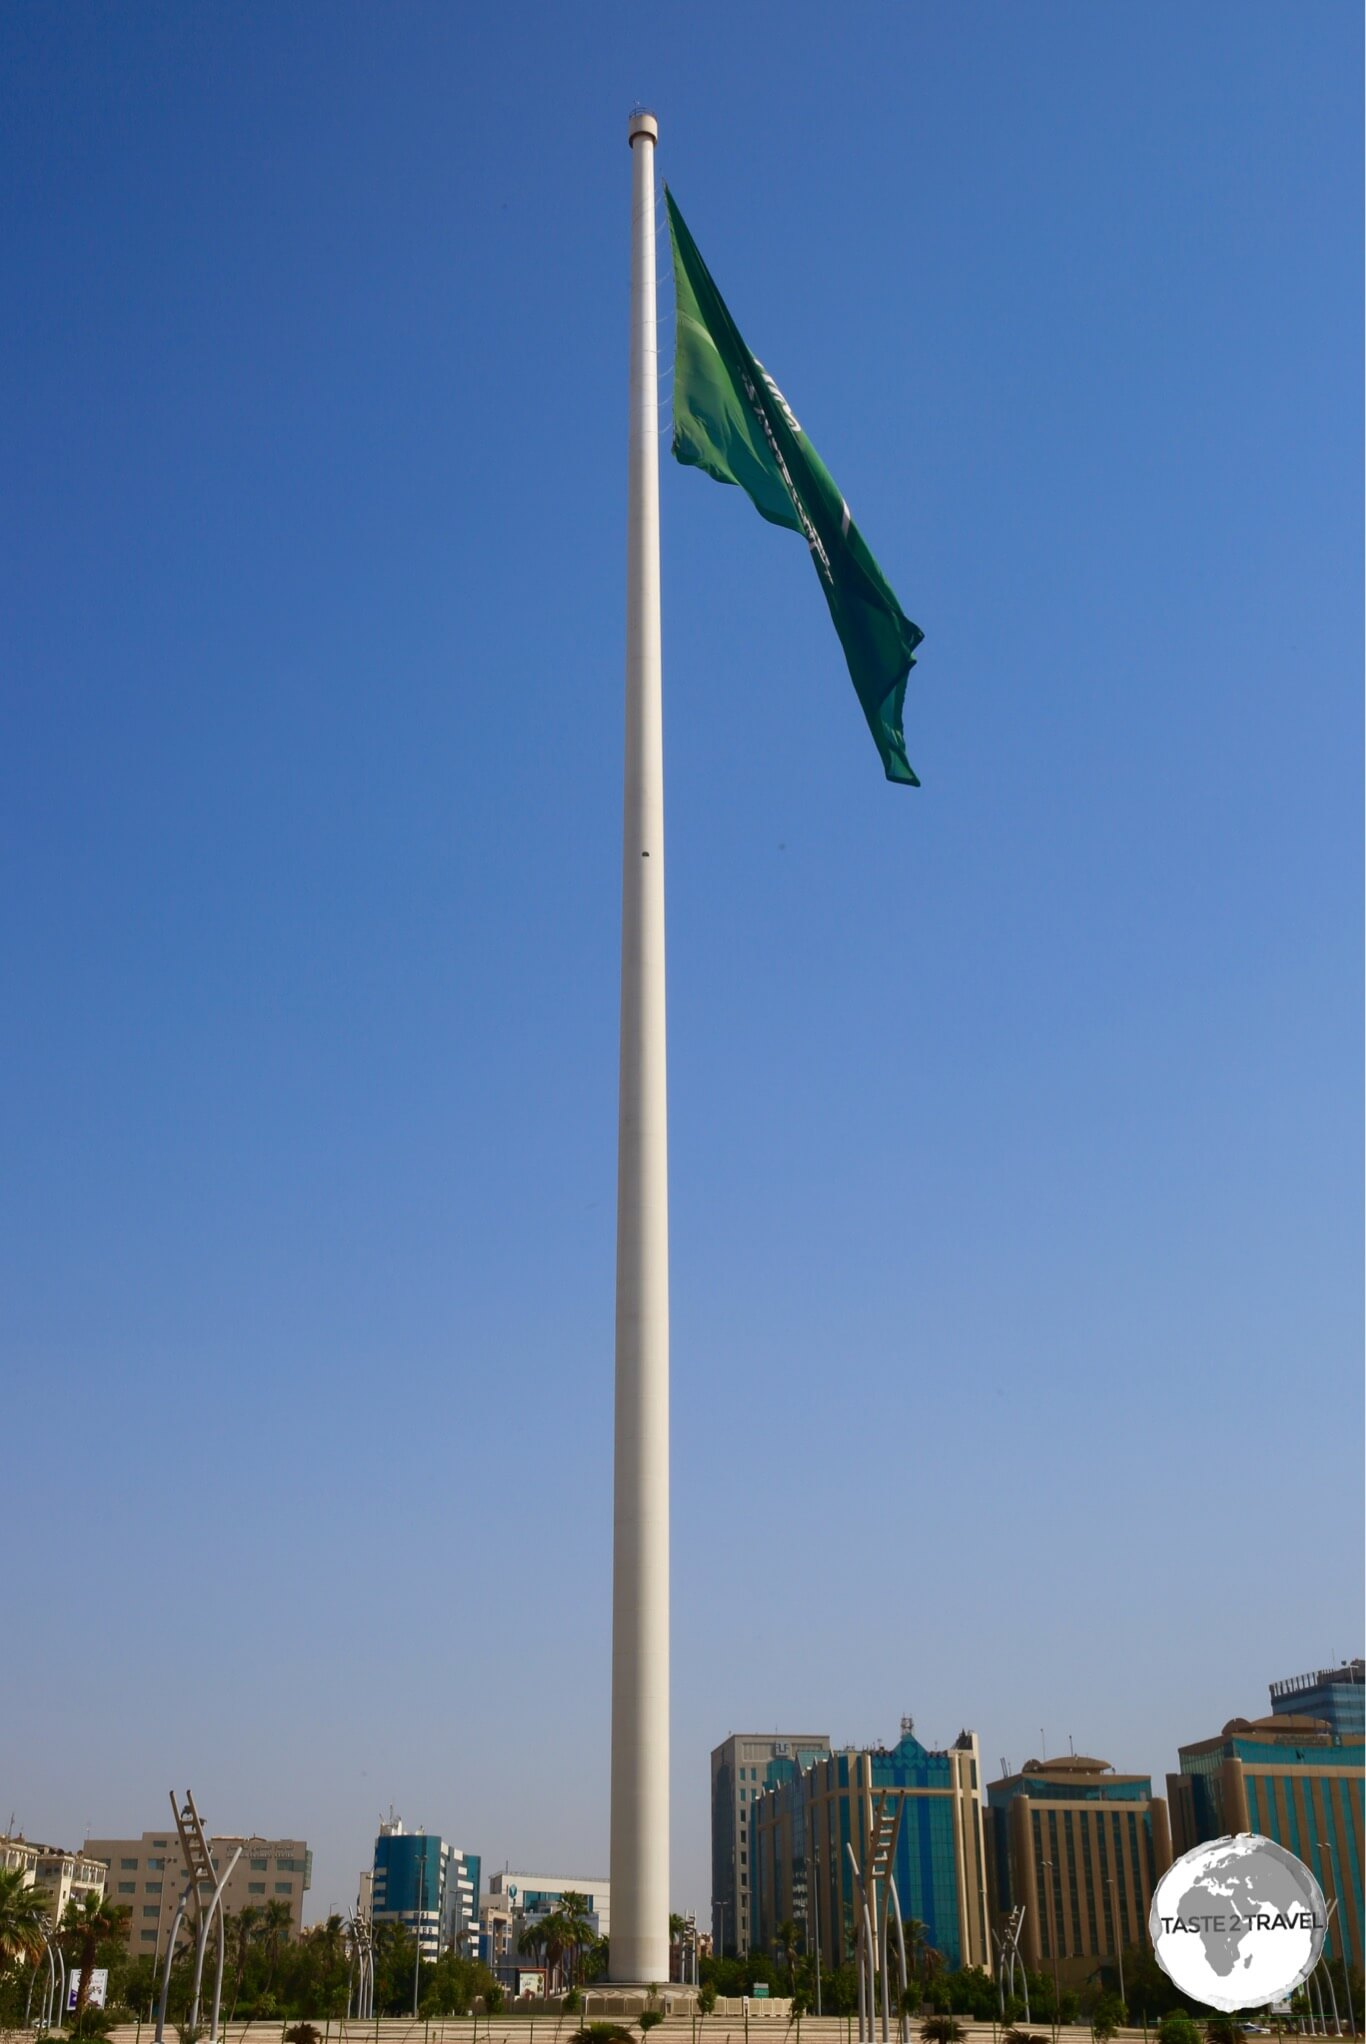 At 170-metres high, the Jeddah flagpole is the tallest in the world.